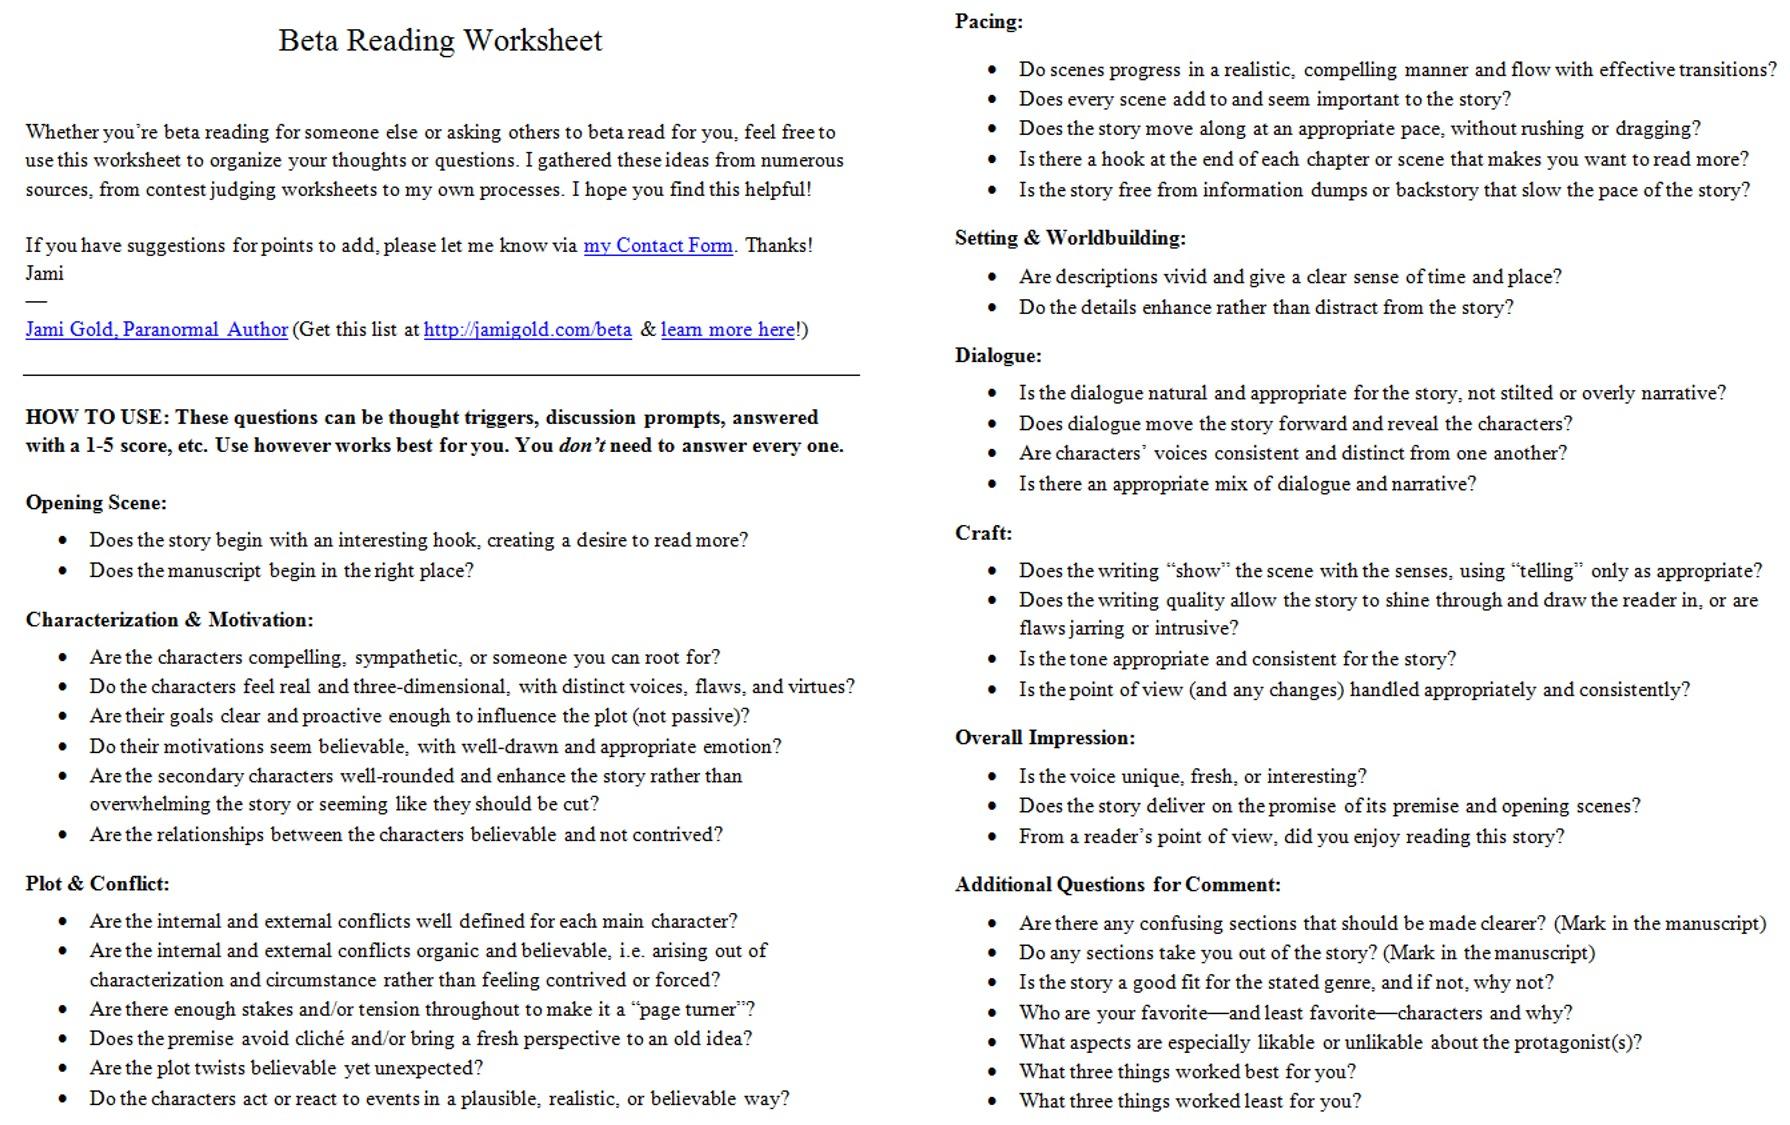 Aldiablosus  Marvelous Worksheets For Writers  Jami Gold Paranormal Author With Extraordinary Screen Shot Of The Twopage Beta Reading Worksheet With Comely Subtraction Worksheets With And Without Regrouping Also Preschool Kindergarten Worksheets In Addition Free Printable Grade  Math Worksheets And Free Halloween Worksheet As Well As Starfall Math Worksheets Additionally Science Revision Worksheets From Jamigoldcom With Aldiablosus  Extraordinary Worksheets For Writers  Jami Gold Paranormal Author With Comely Screen Shot Of The Twopage Beta Reading Worksheet And Marvelous Subtraction Worksheets With And Without Regrouping Also Preschool Kindergarten Worksheets In Addition Free Printable Grade  Math Worksheets From Jamigoldcom